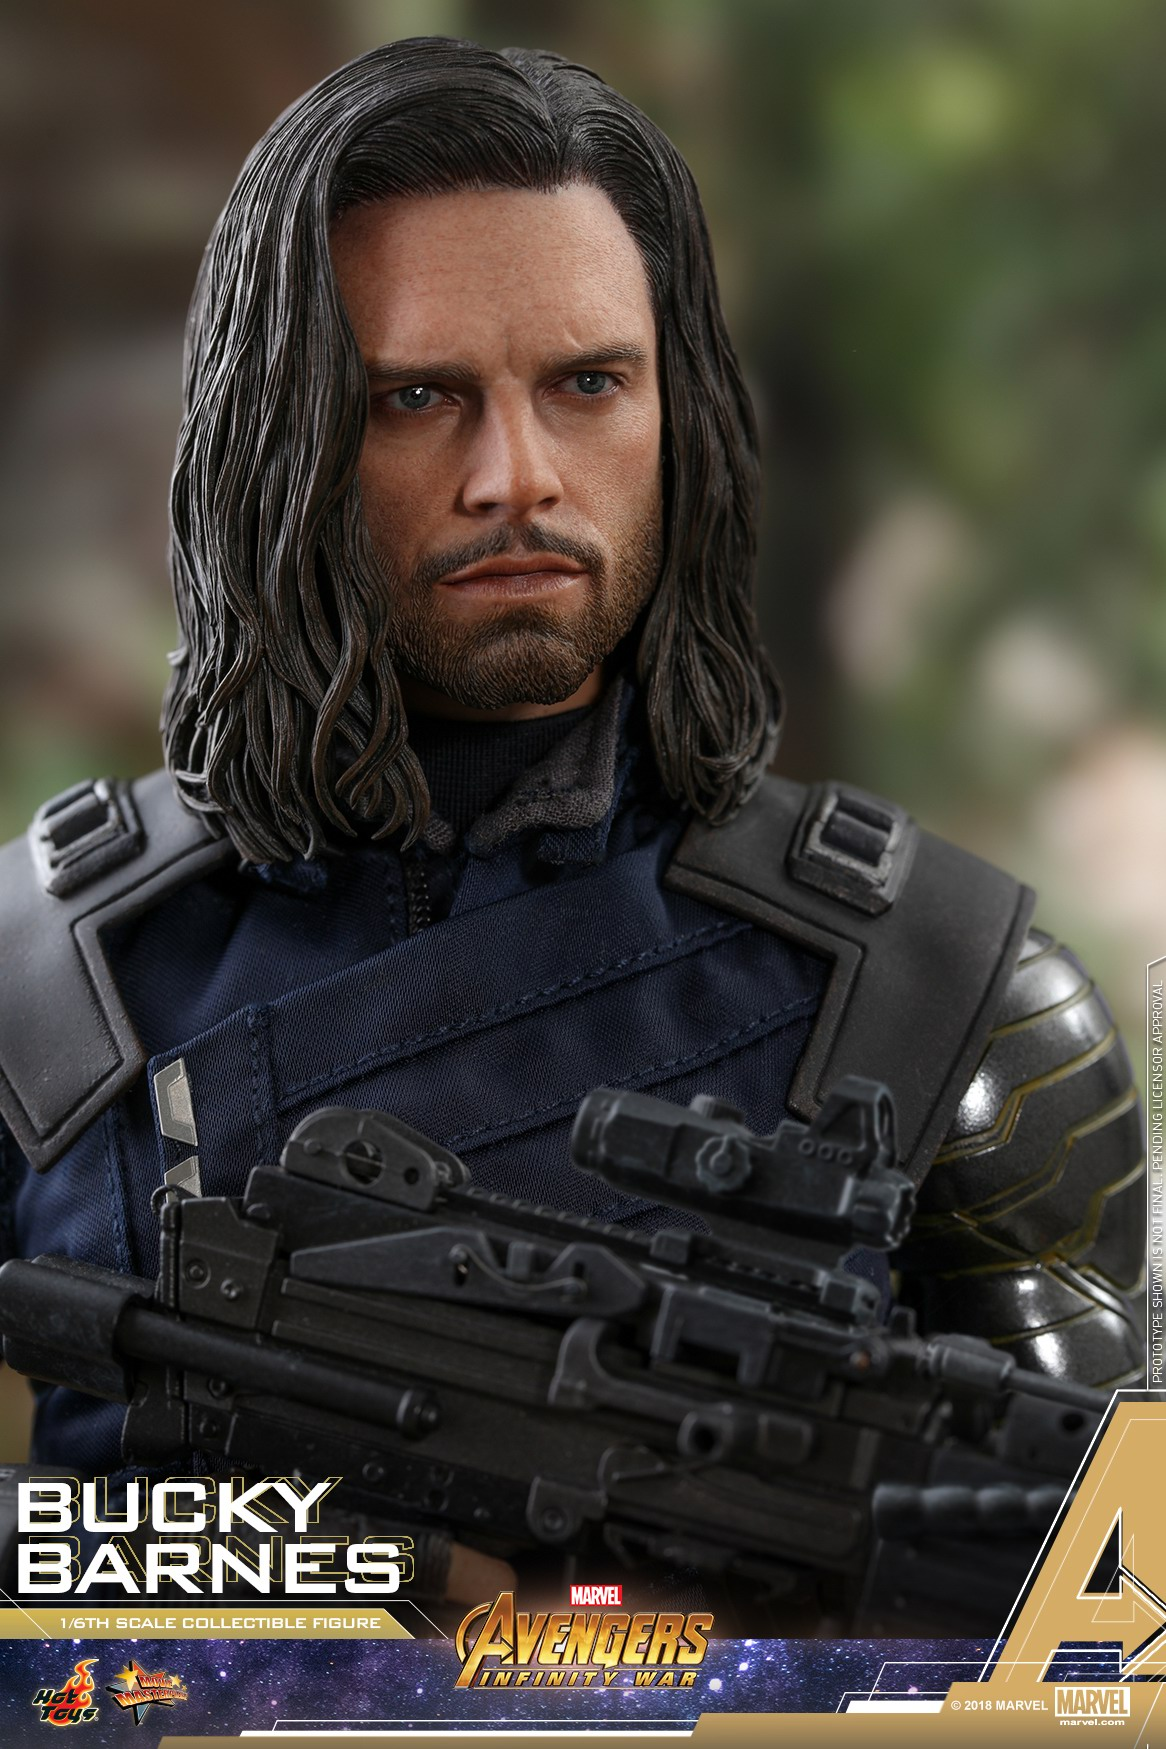 Hot-Toys-AIW-Bucky-Barnes-collectible-figure_PR11.jpg